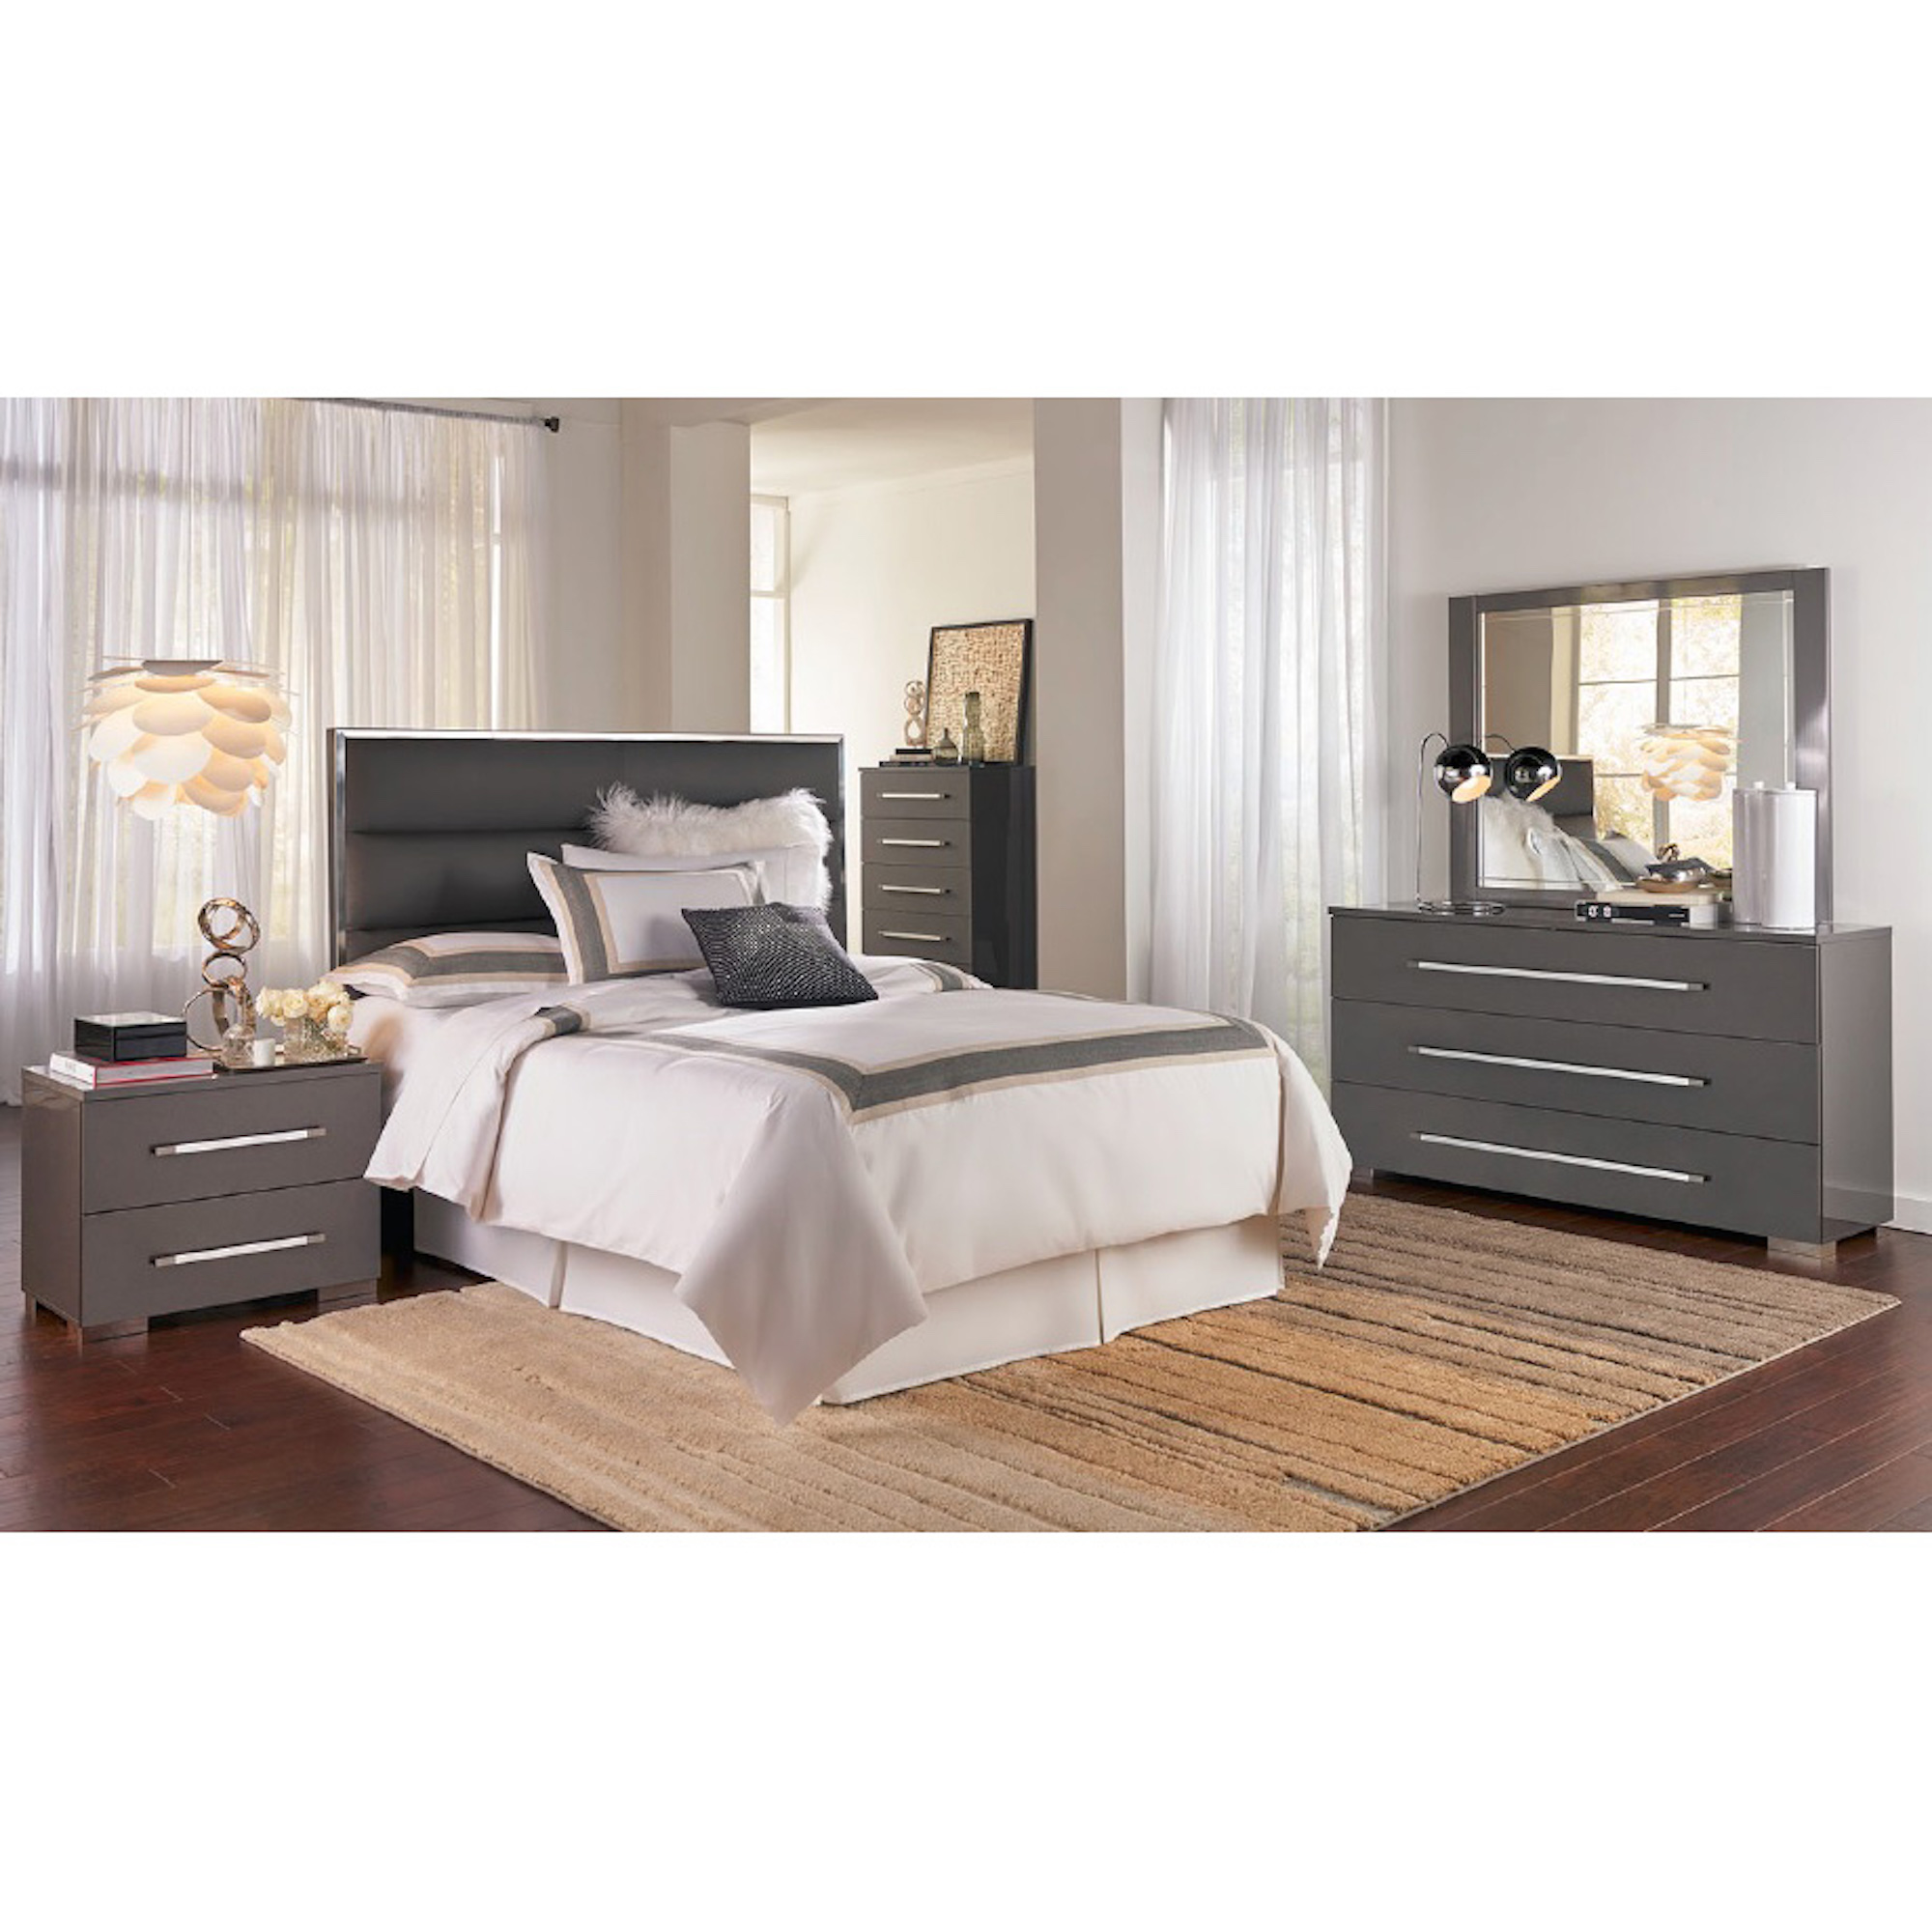 Rent To Own Ideaitalia 5 Piece Dimora Ii Queen Bedroom Collection